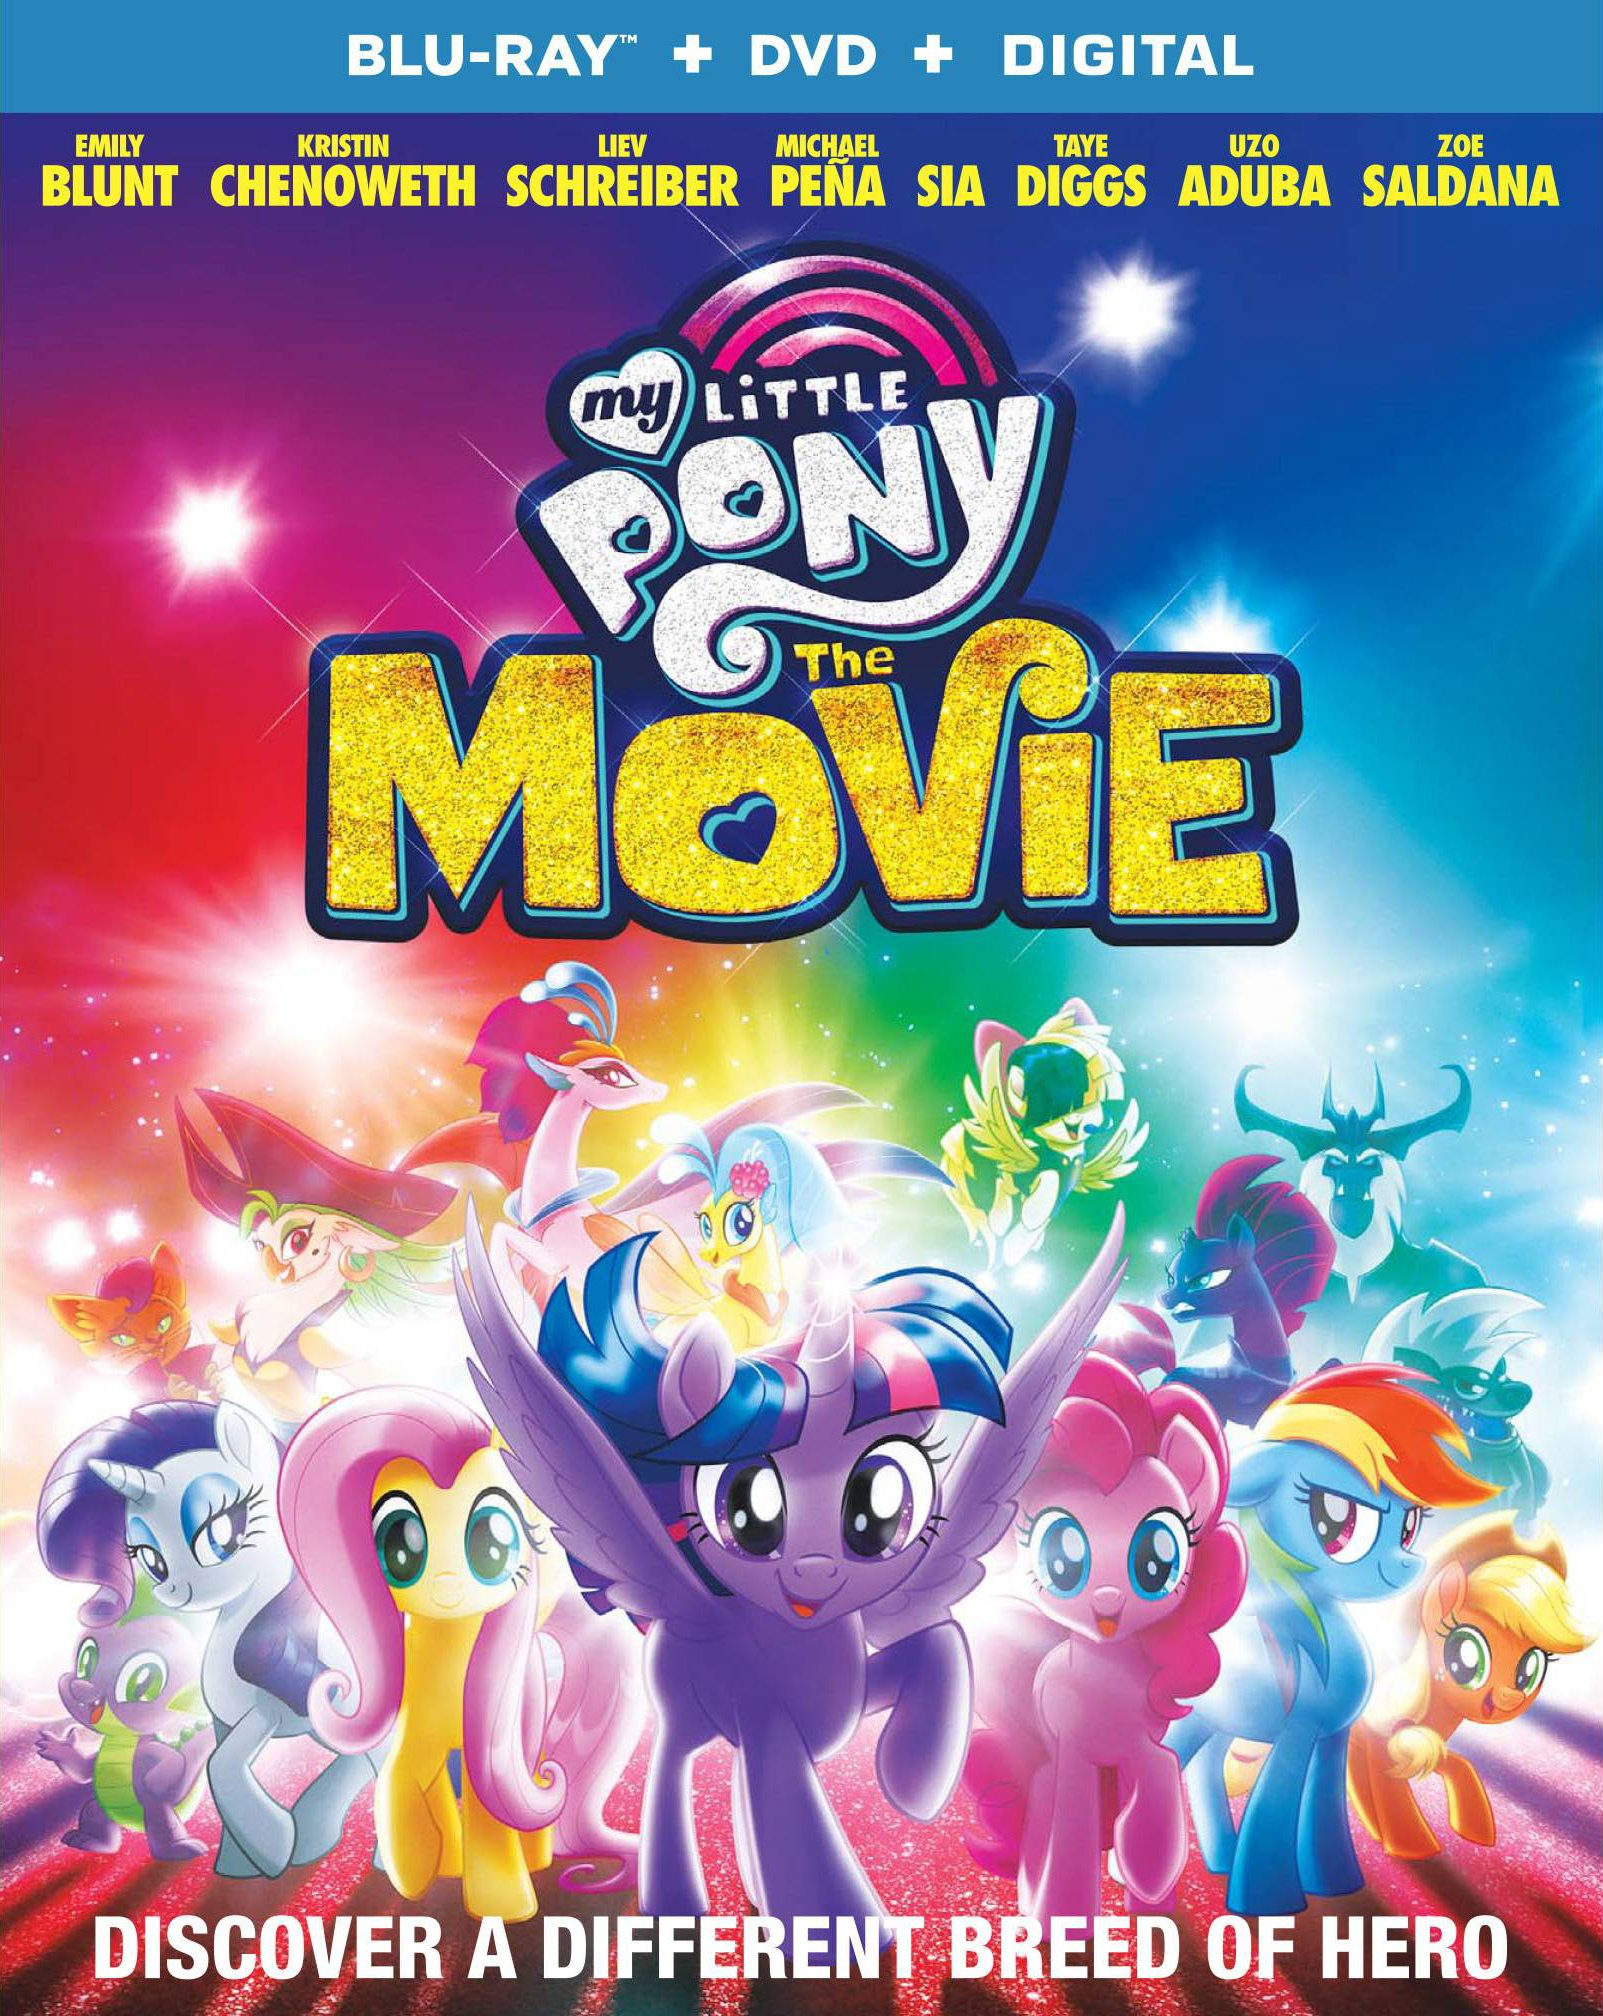 Blu-ray : My Little Pony: The Movie (With DVD, 2 Pack, Digital Theater System, Widescreen, )